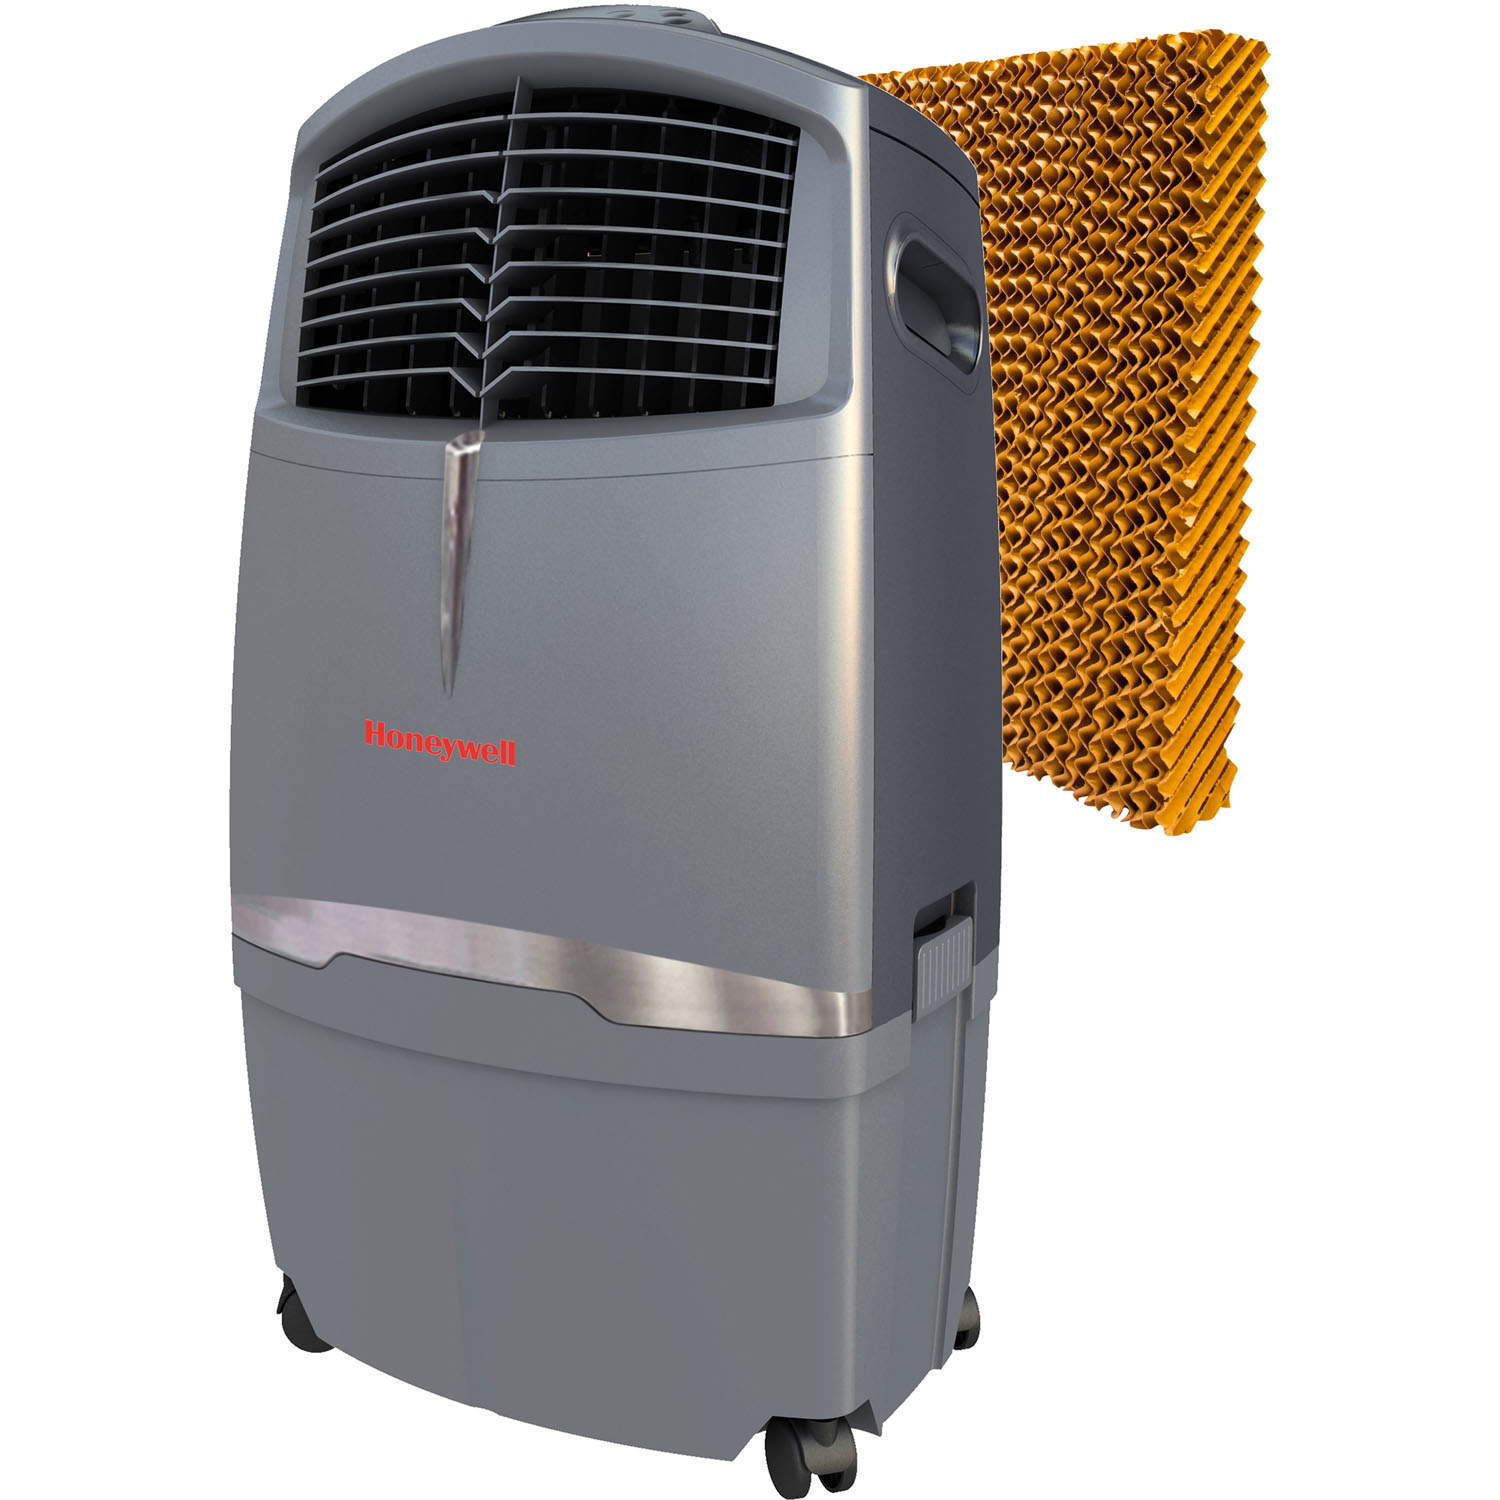 Honeywell CO30XE 525 CFM 320 sq. ft. Indoor/Outdoor Portable Evaporative Air Cooler (Swamp Cooler) with Remote Control and Bonus Replacement Filter, Gray